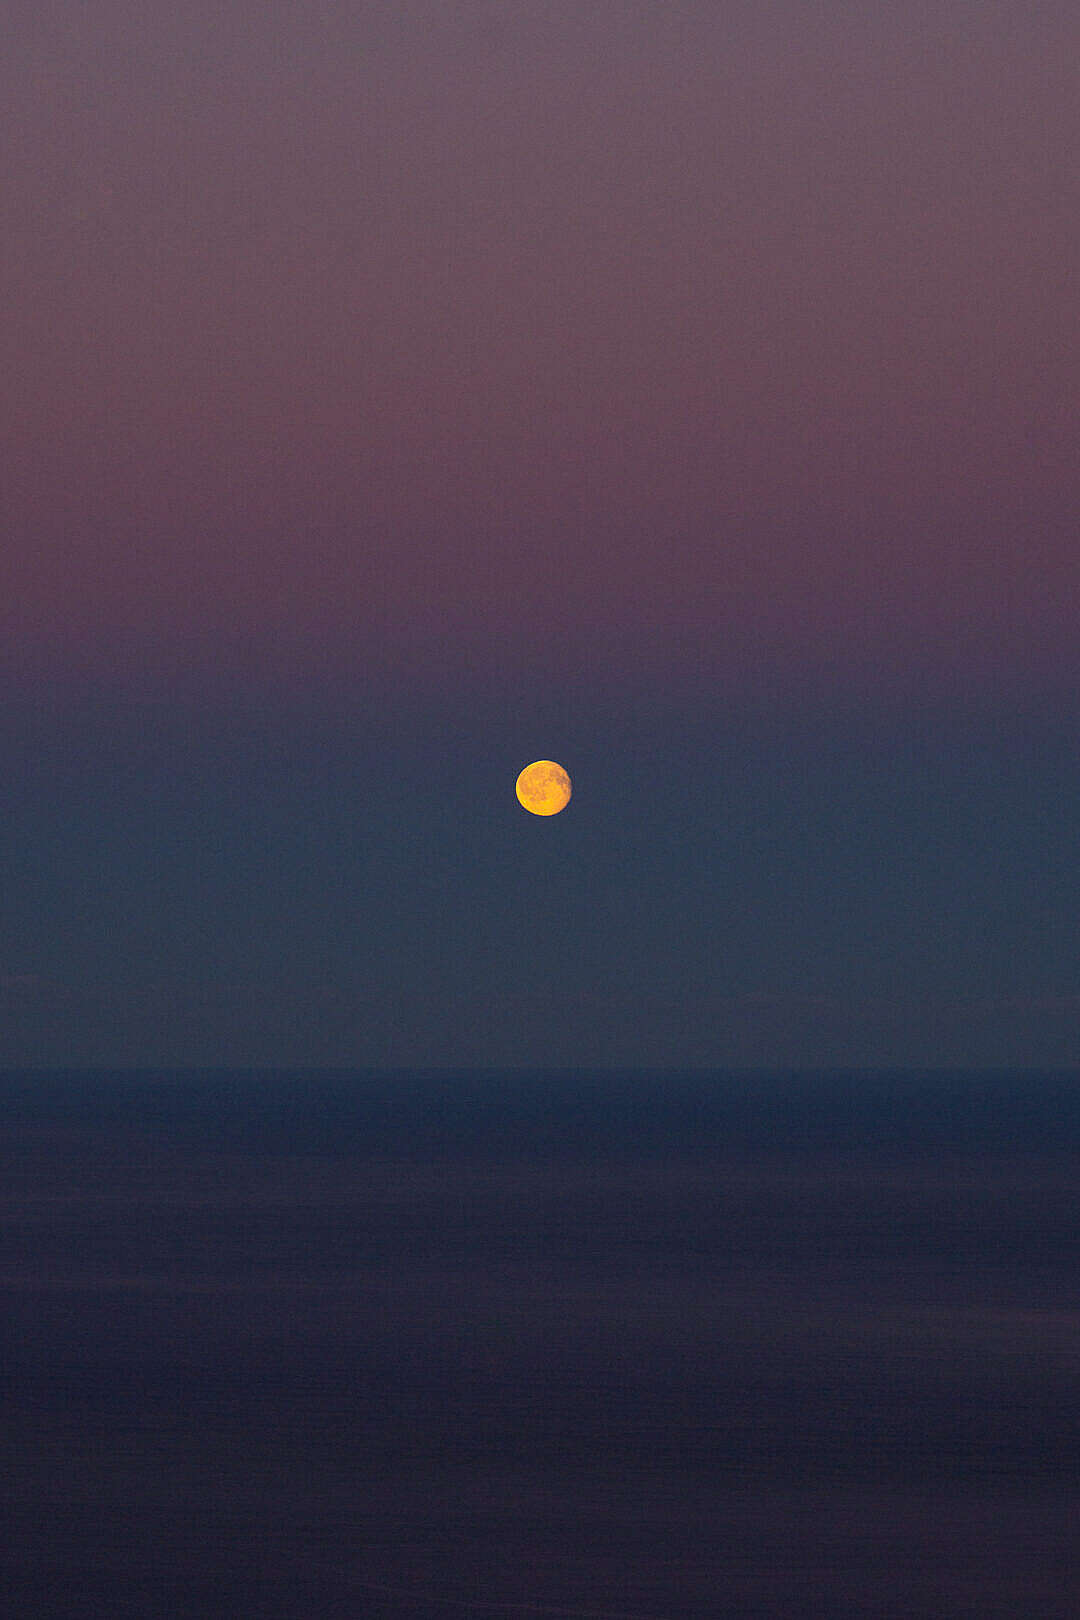 Download Moon over The Sea on a Colorful Dawn Sky FREE Stock Photo